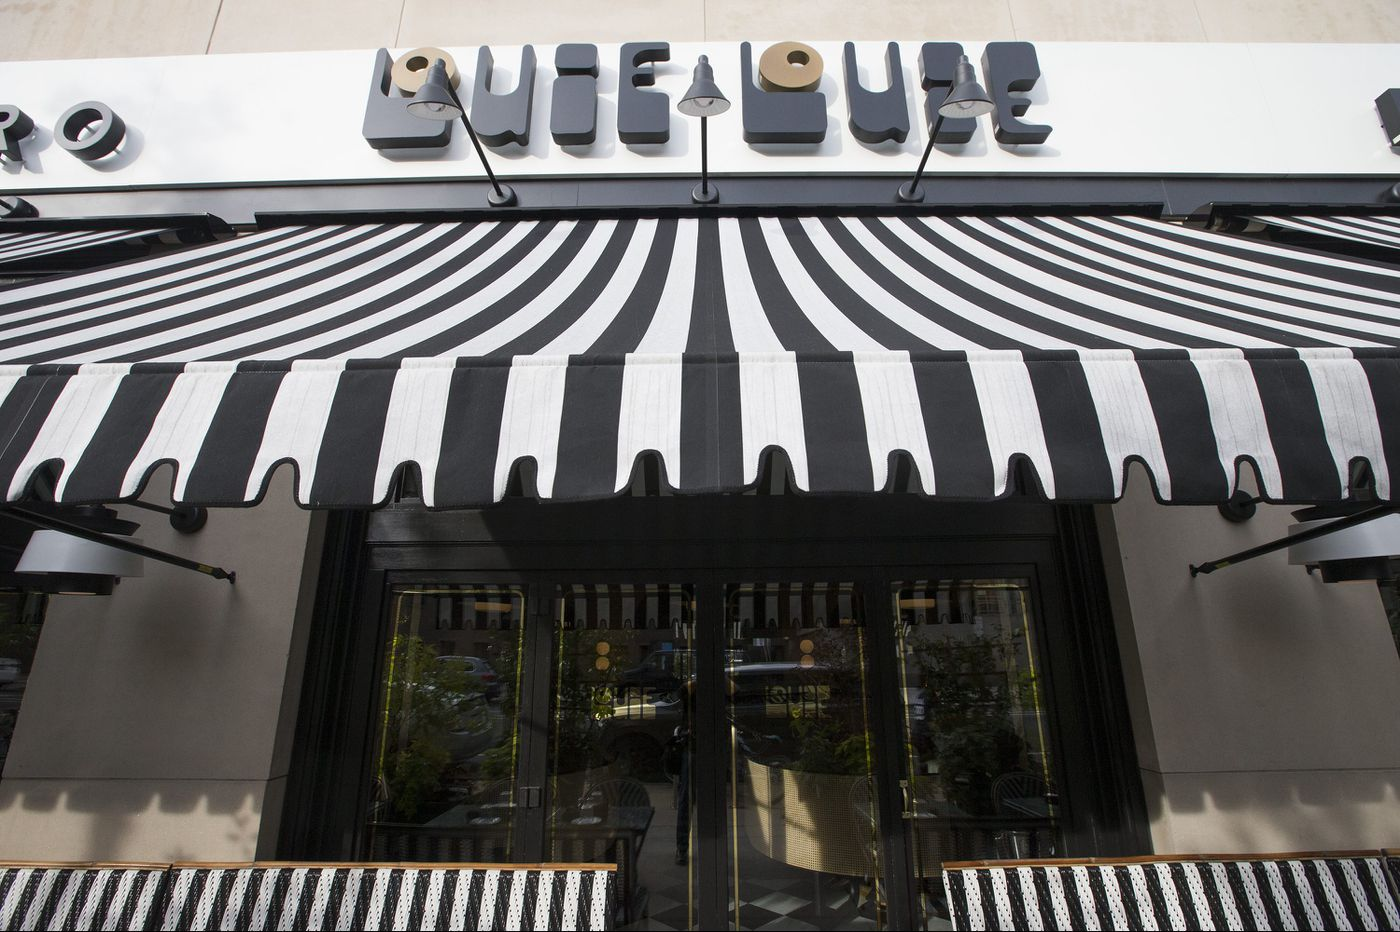 Louie Louie brings American brasserie vibe — and noise — to University City